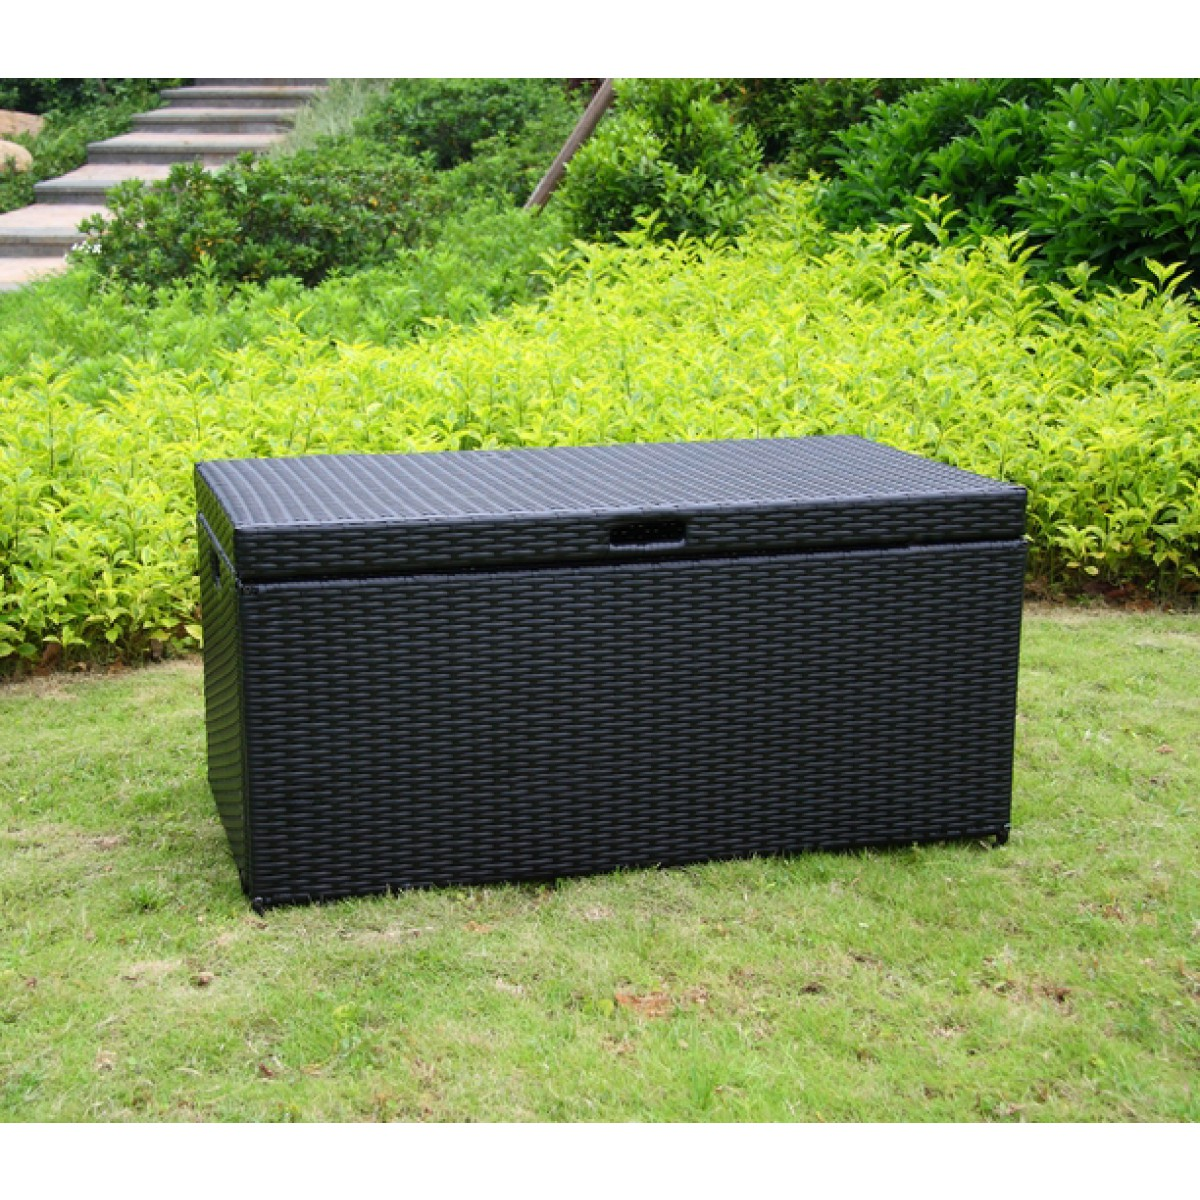 Outdoor Black Resin Wicker Storage Deck Box